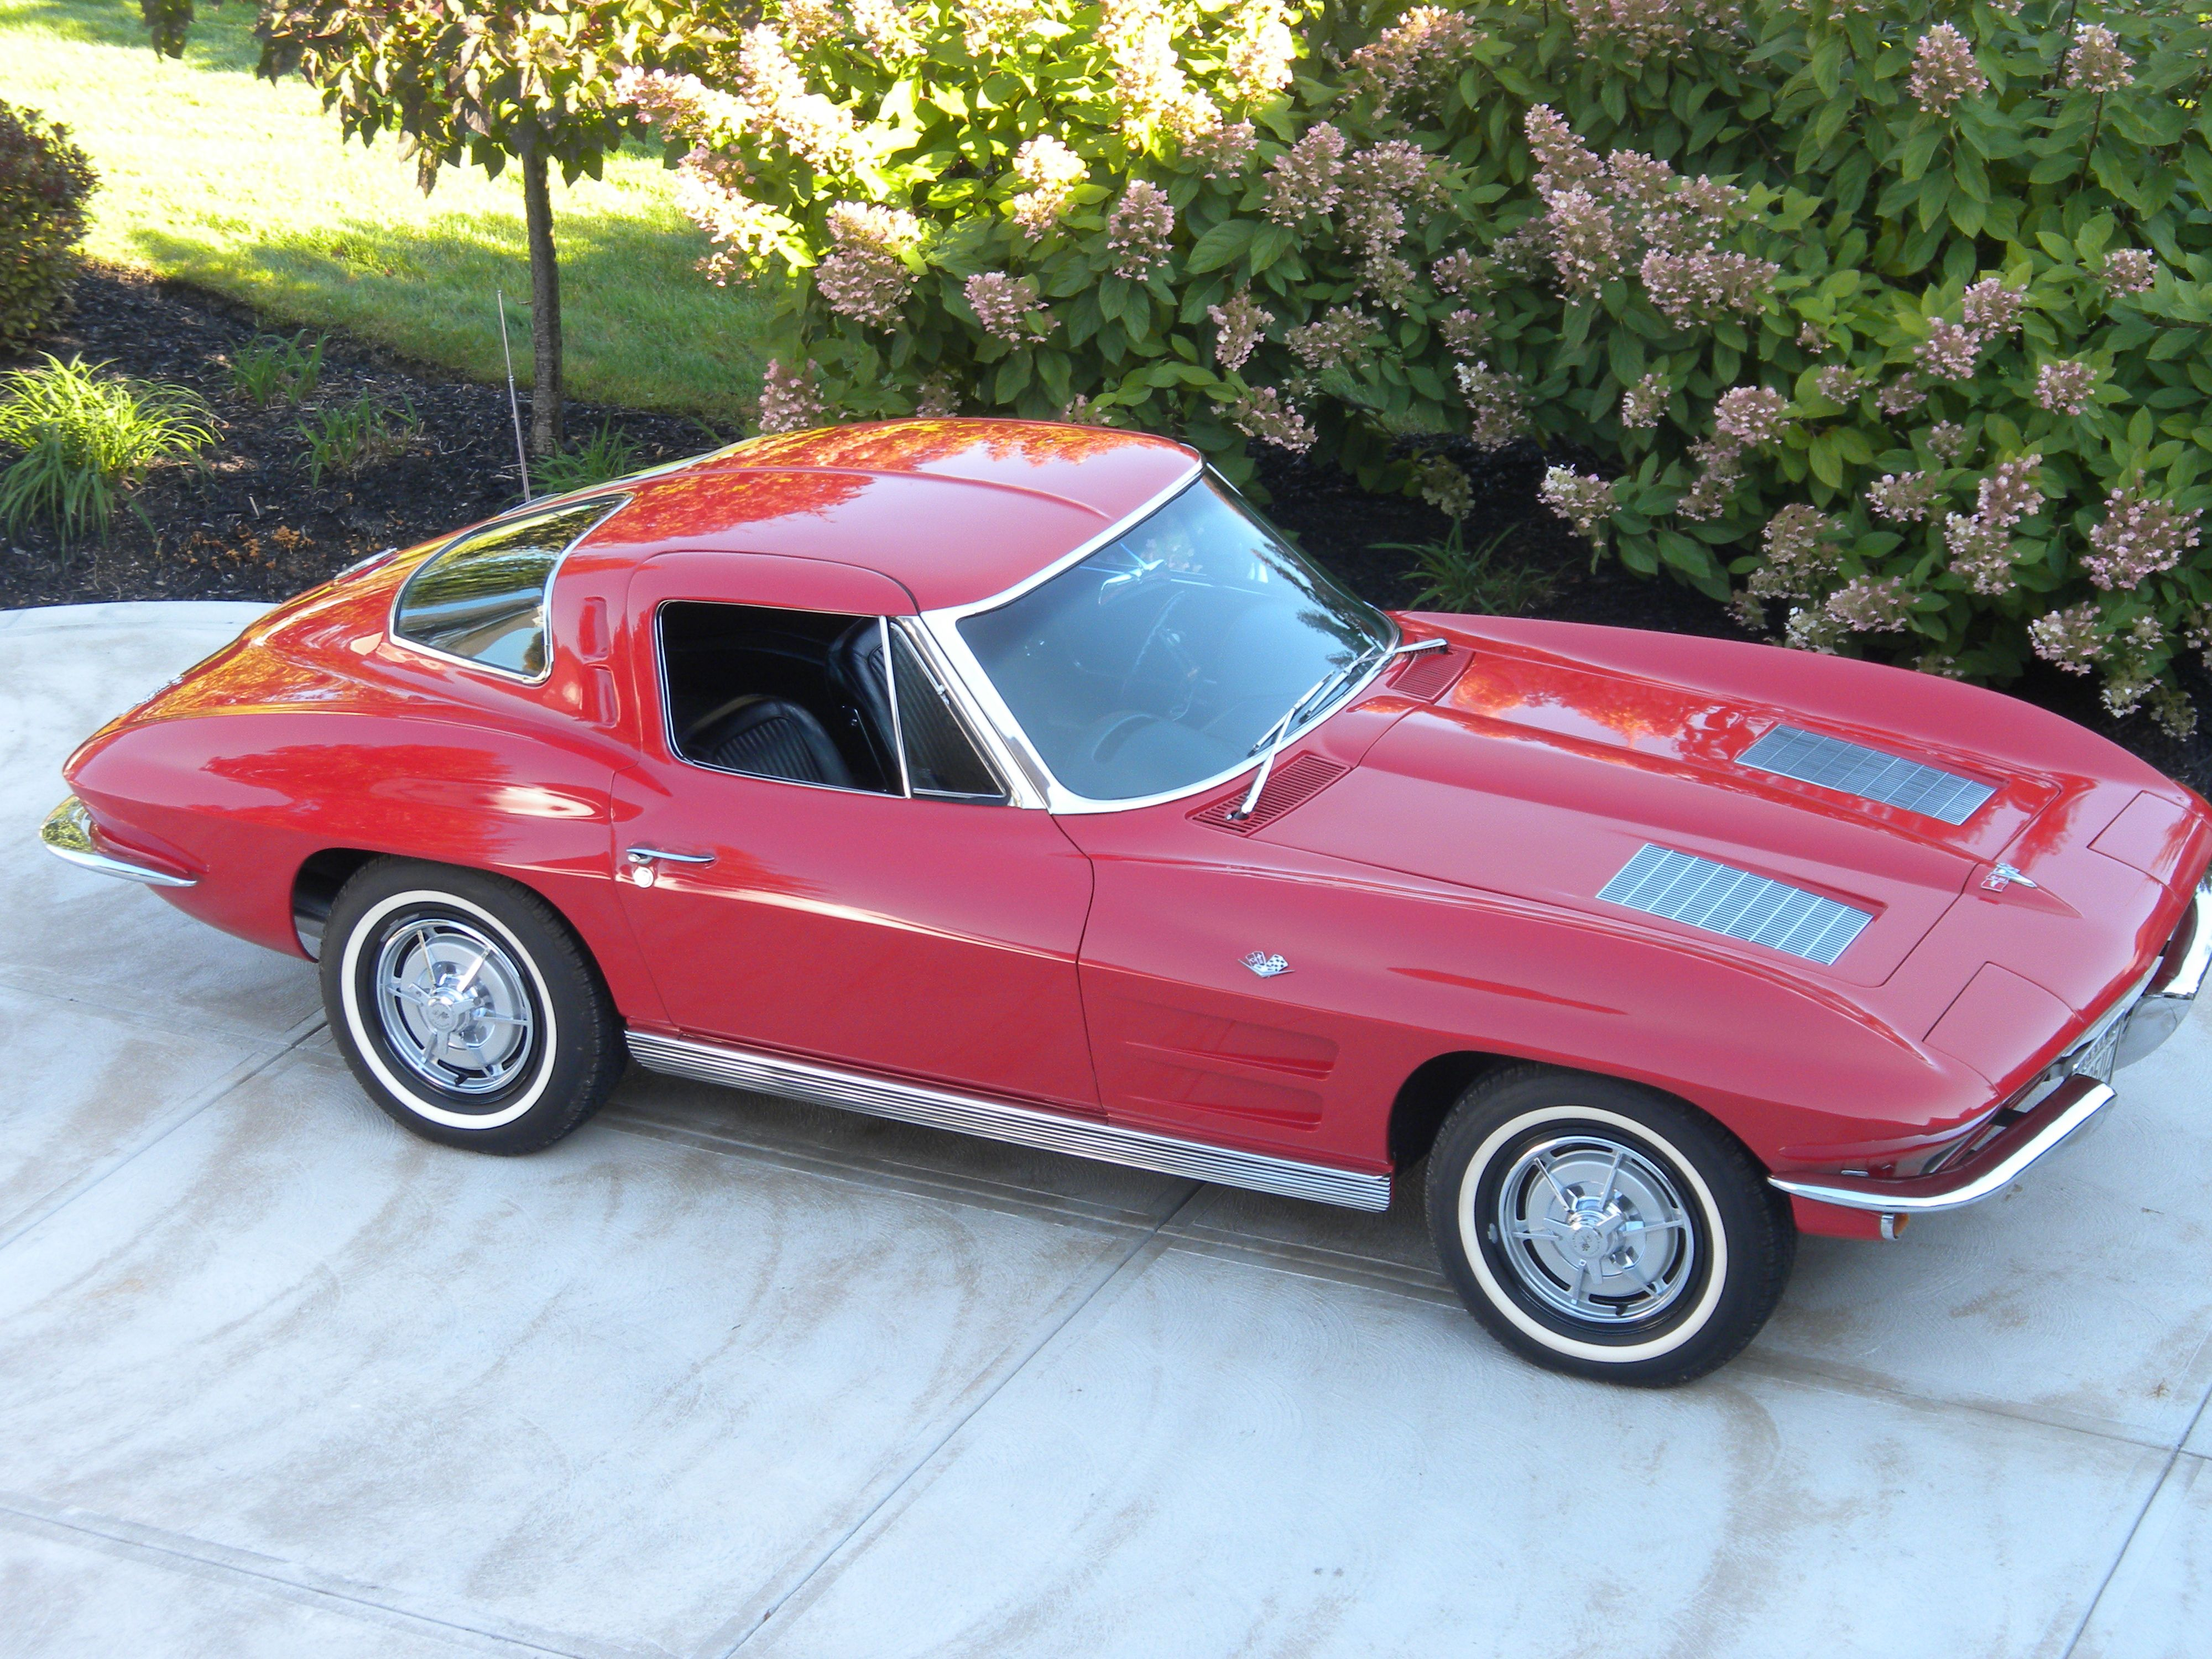 '63 Corvette Coupe had three of these, red, silver blue